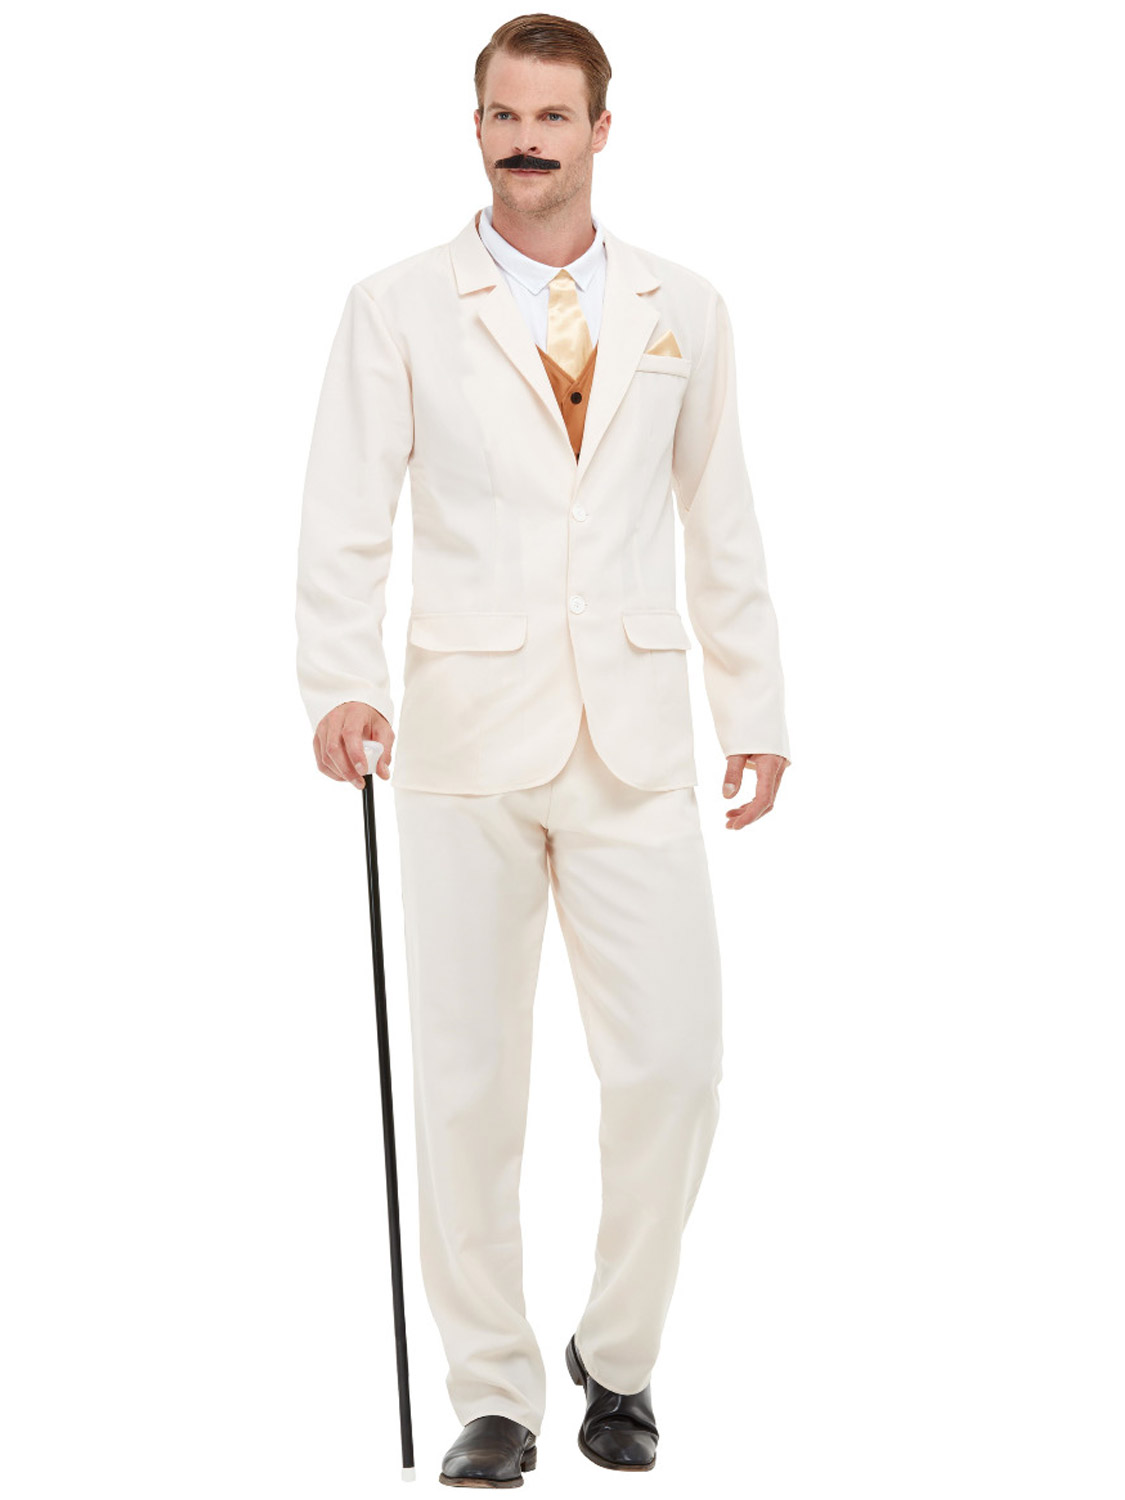 Details About Me 1920s Gent Costume White Suit Fancy Dress Great Gatsby Victorian